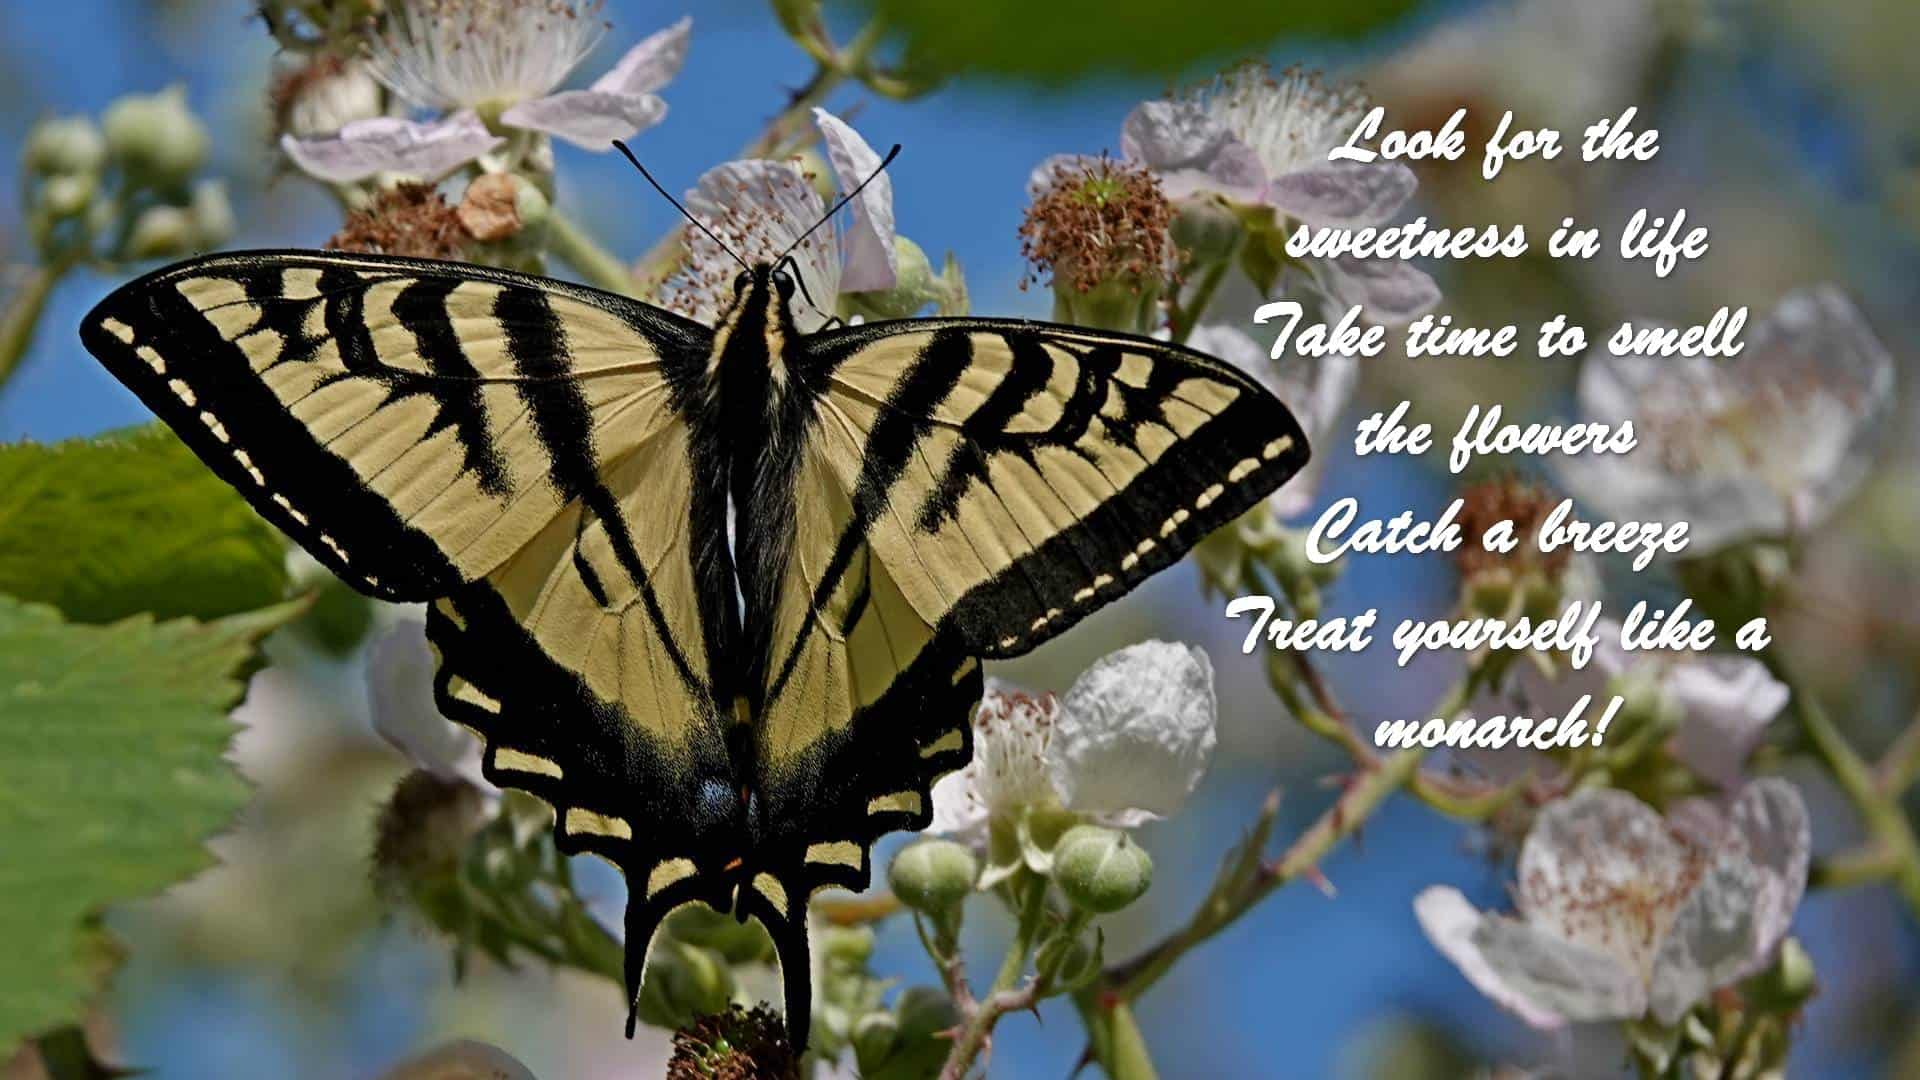 Look for the sweetness in life Take time to smell the flowers Catch a breeze Treat yourself like a monarch!